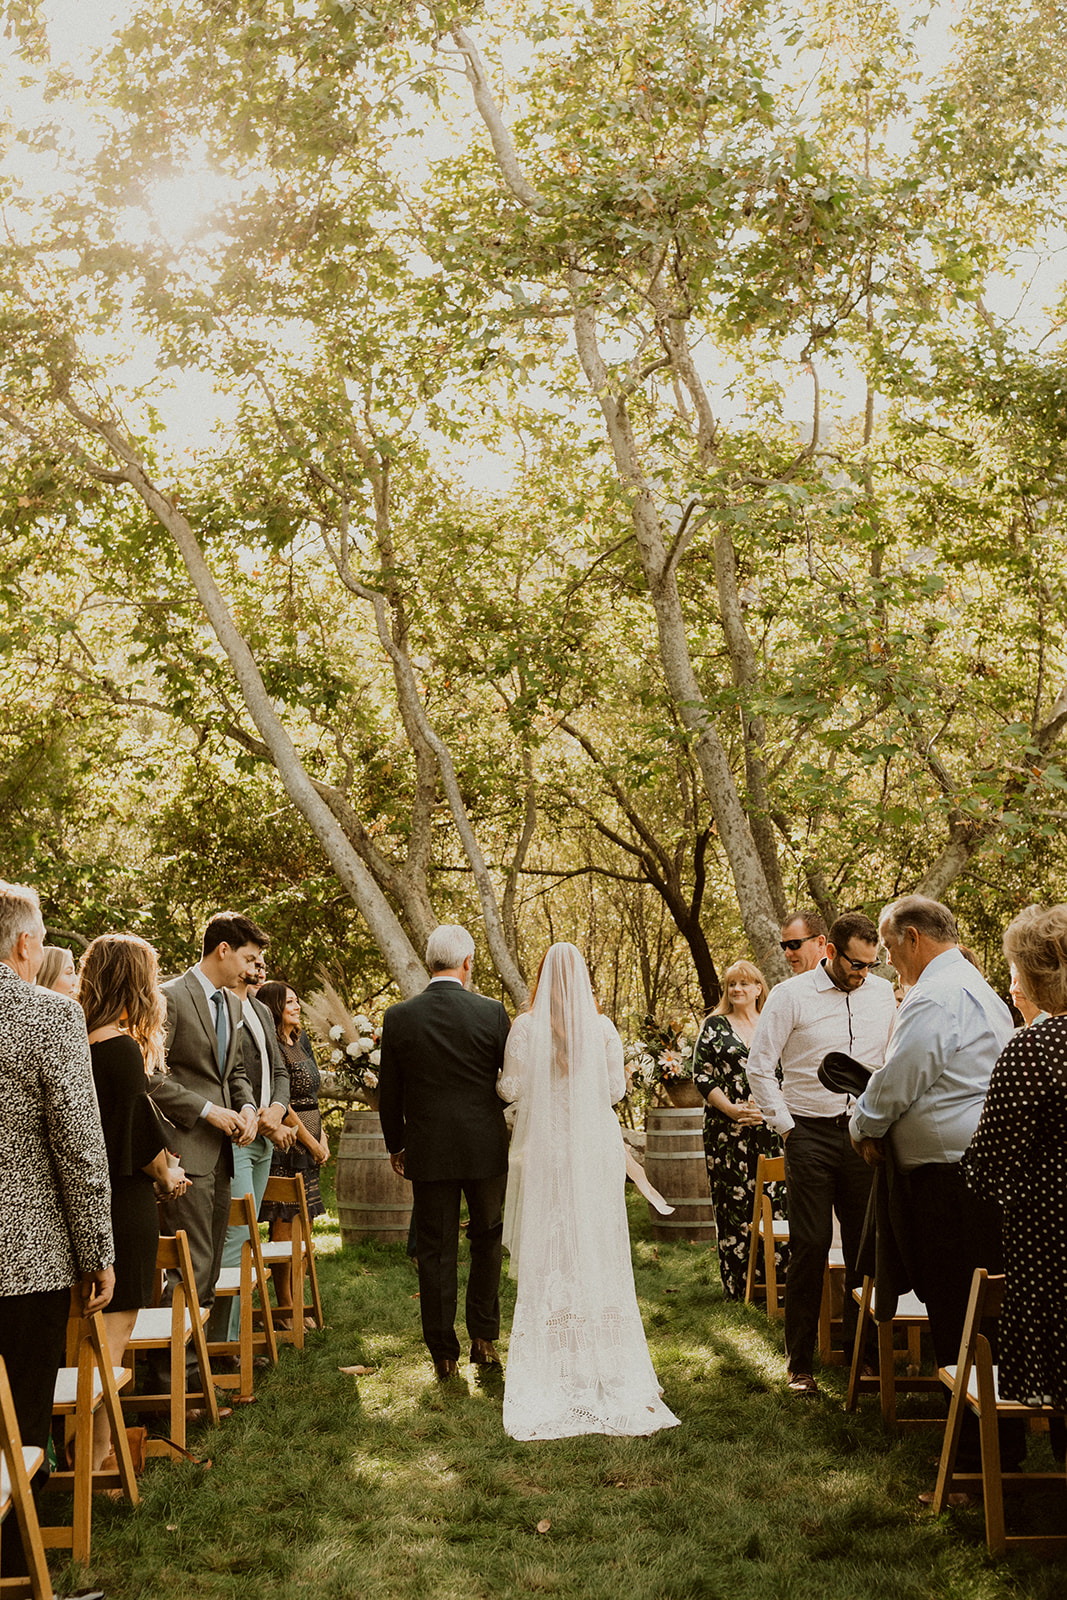 Carolyn_Travis_Wedding_IndiaEarl_BigSur_321.jpg